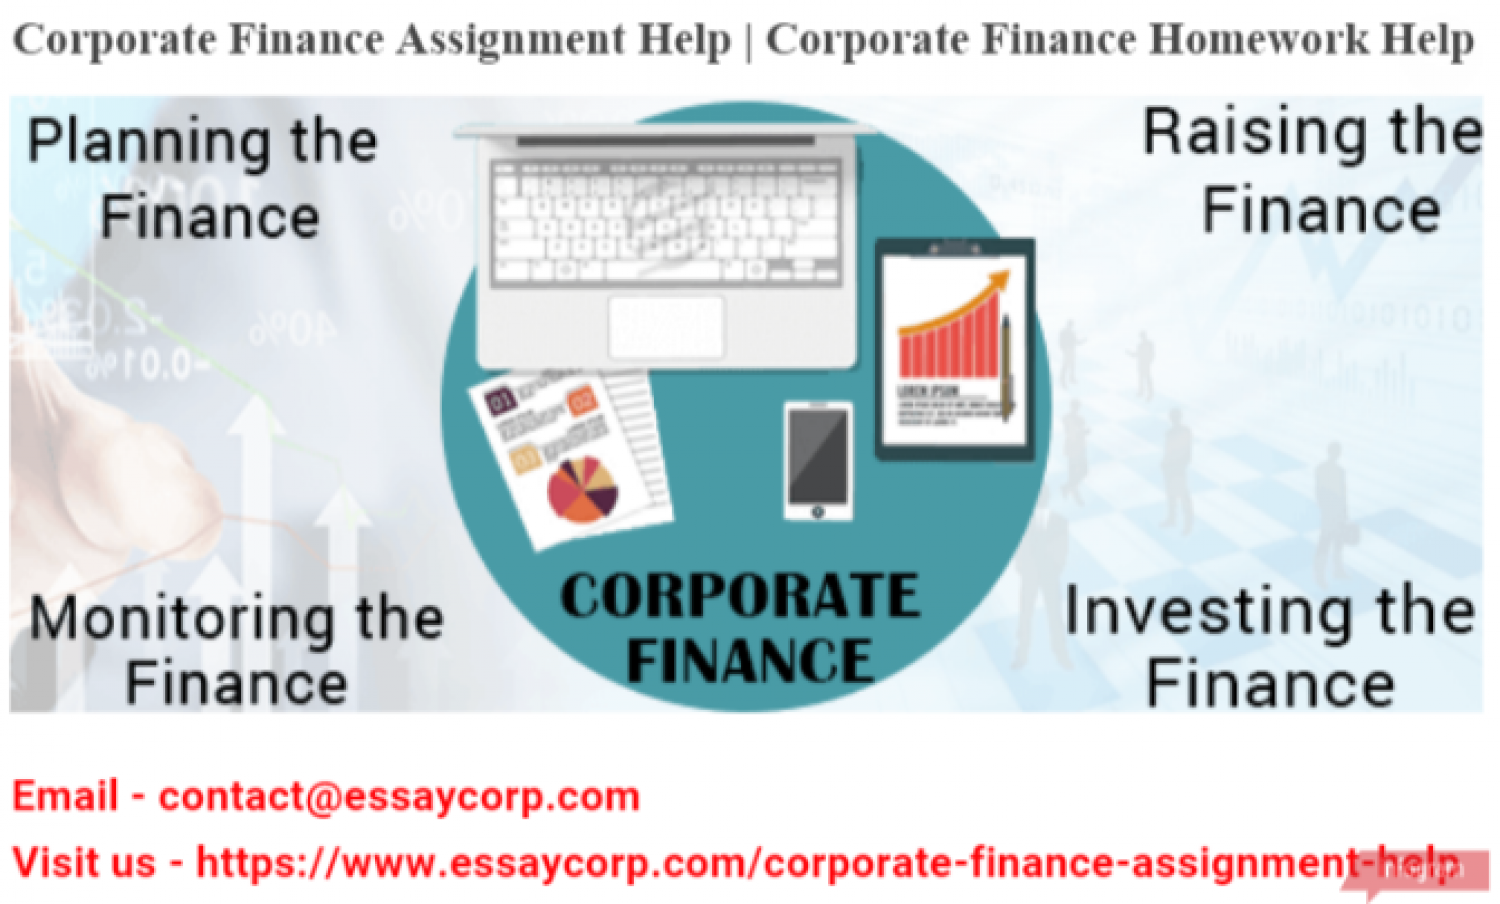 Corporate Finance Assignment Help | Corporate Finance Homework Help Infographic